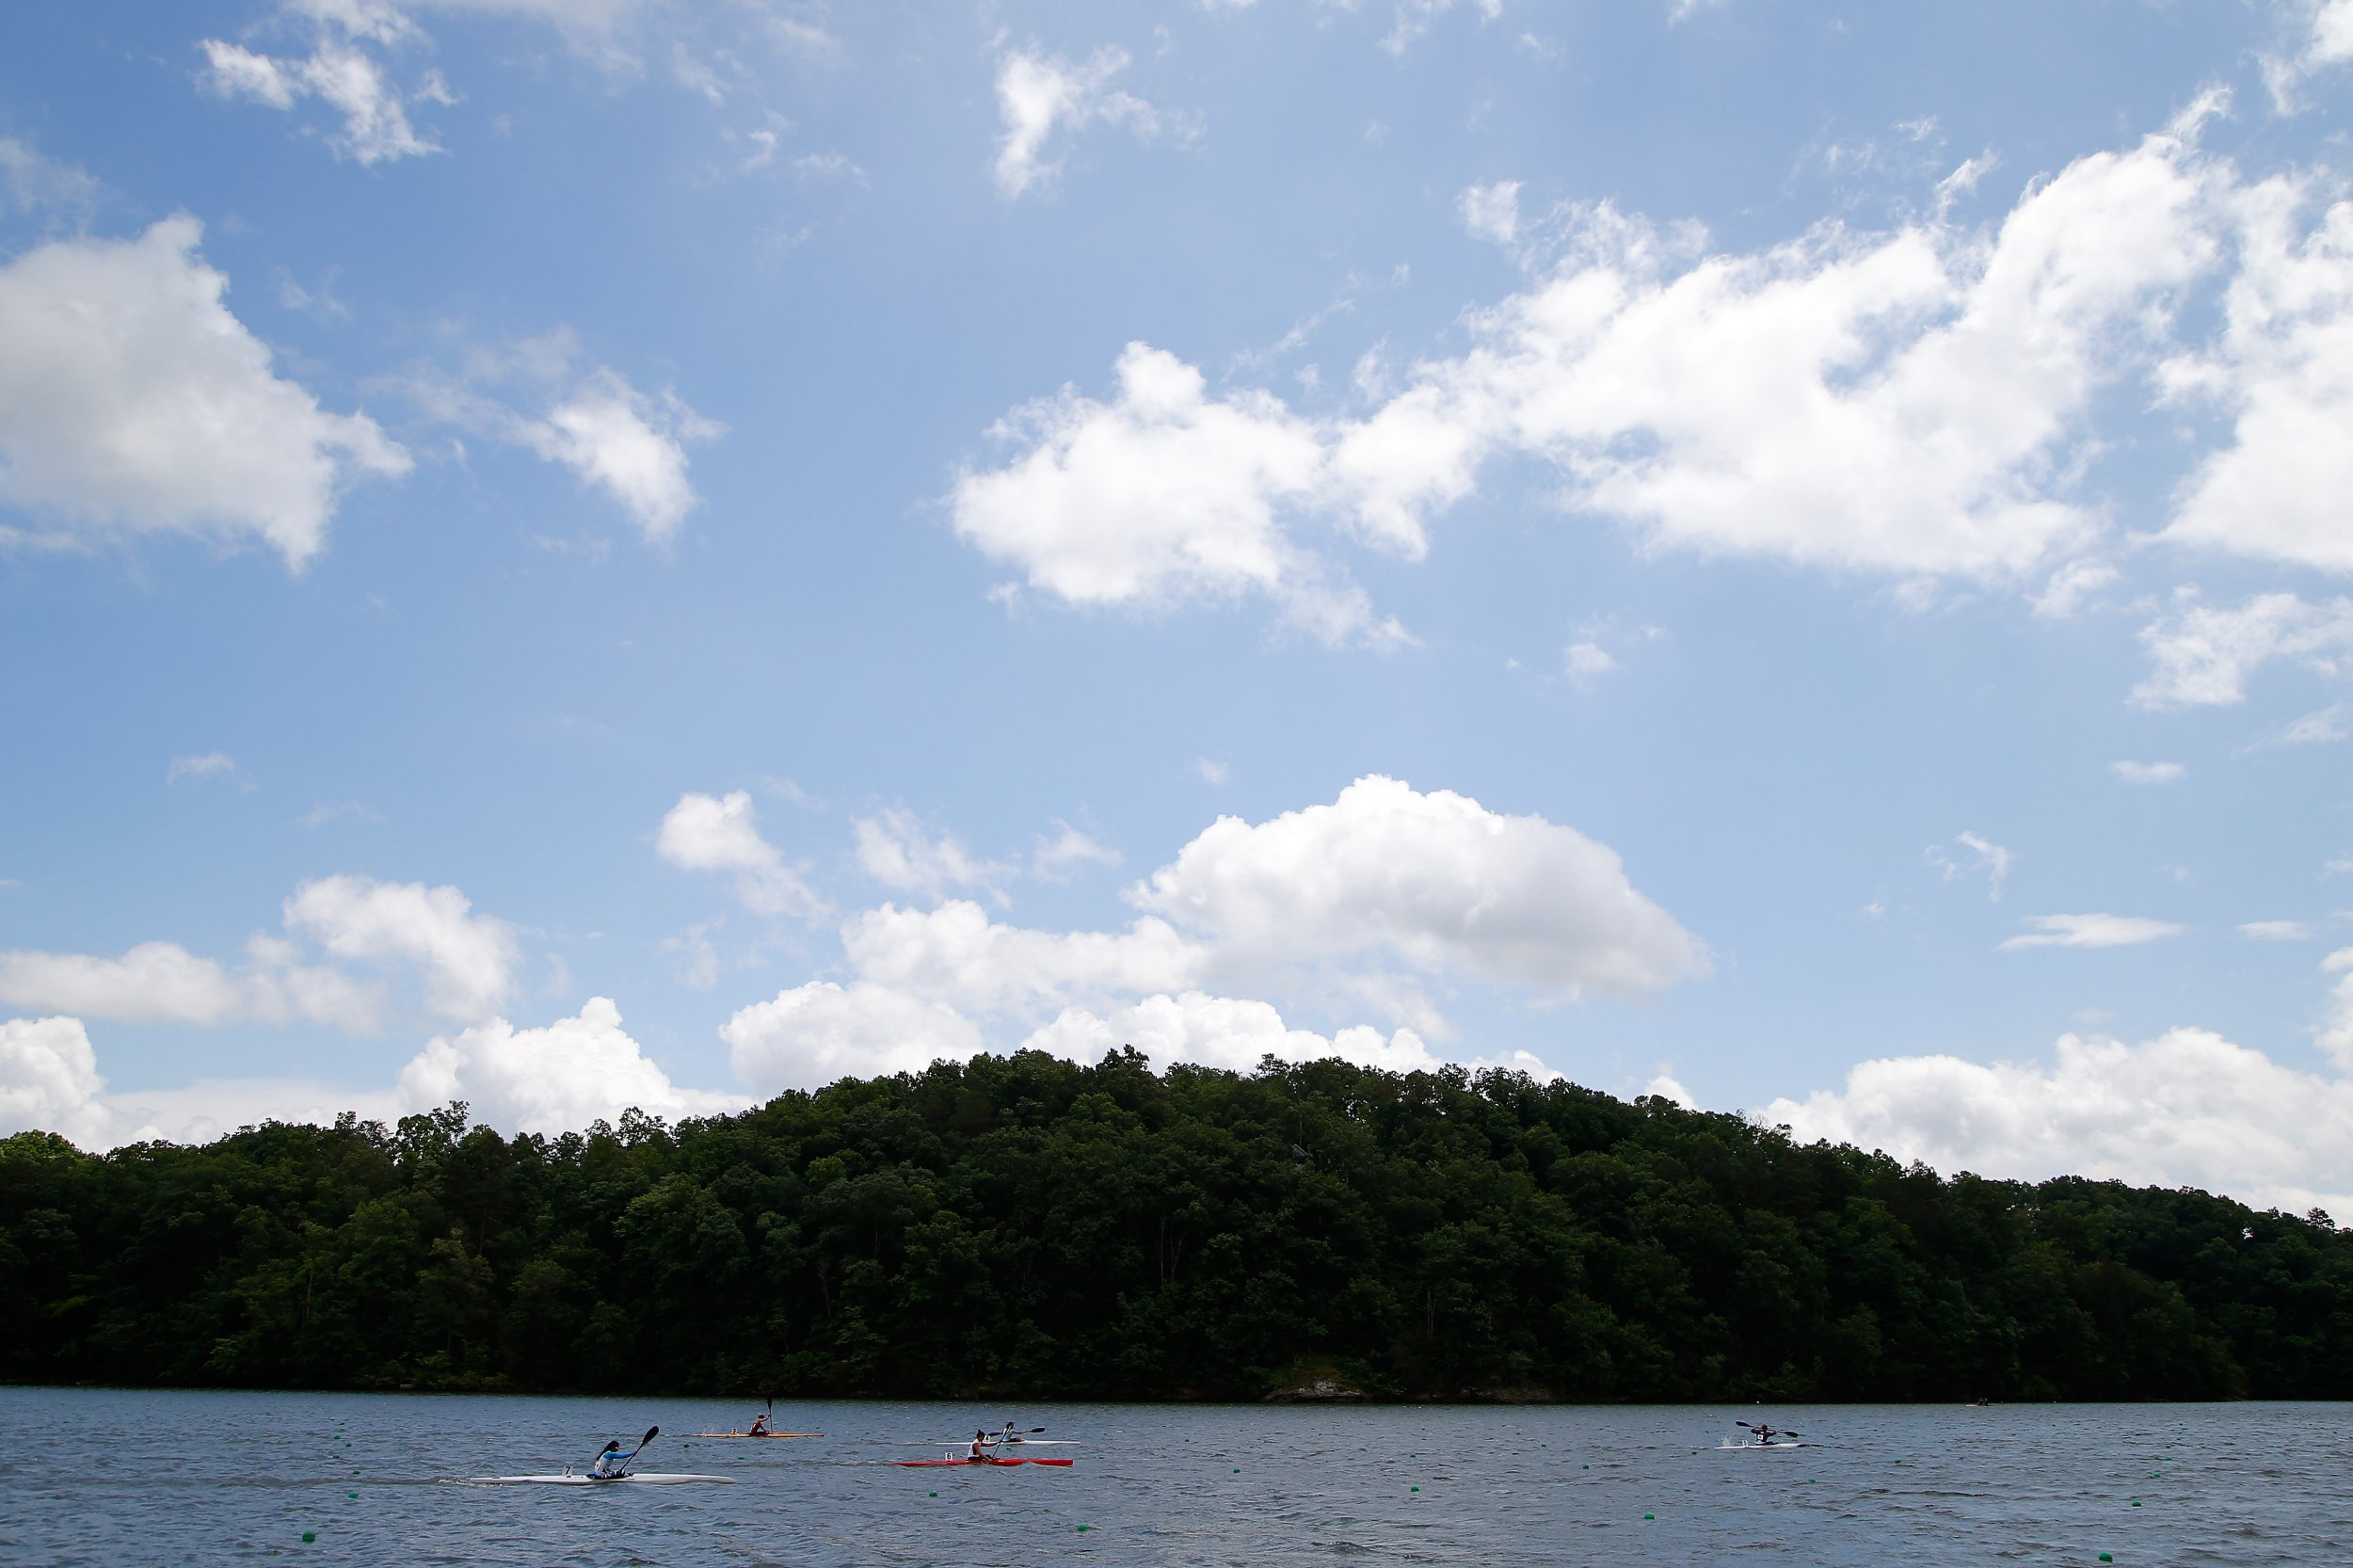 Is Lake Lanier Really Haunted? Missing Boaters Spark Conversation